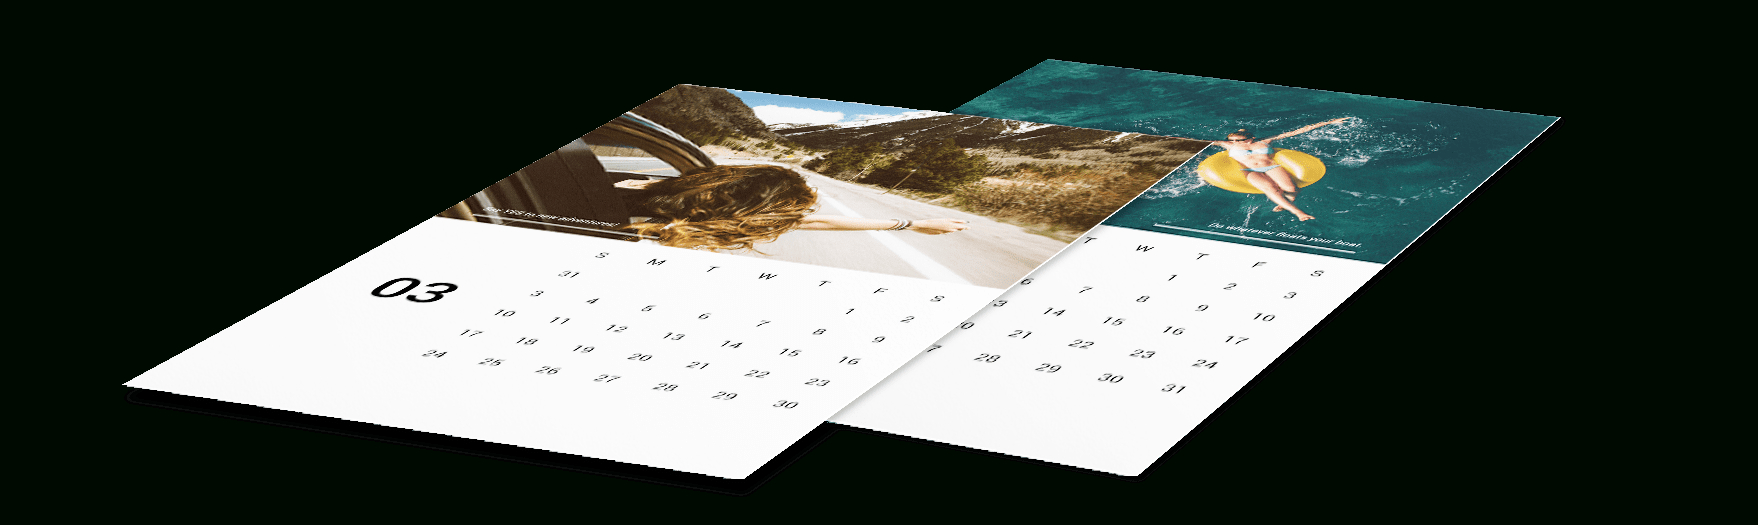 Custom Photo Calendars Philippines | Make Your Own @40% Off for Personalized Calendar Maker Philippines